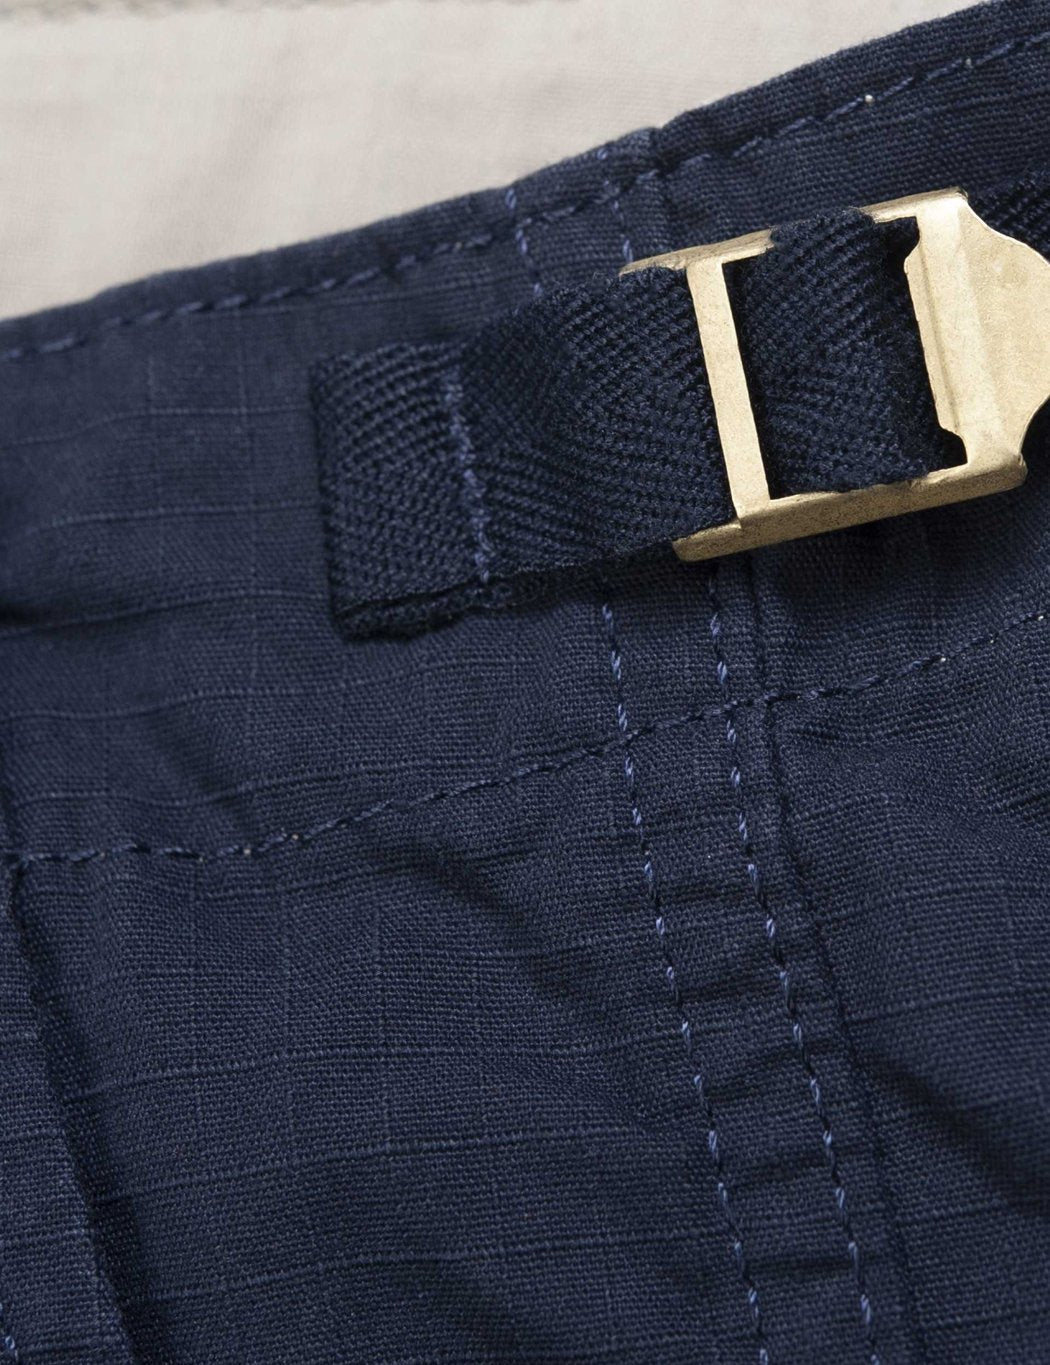 Carhartt-WIP Aviation Cargo Pant - Dark Navy Blau